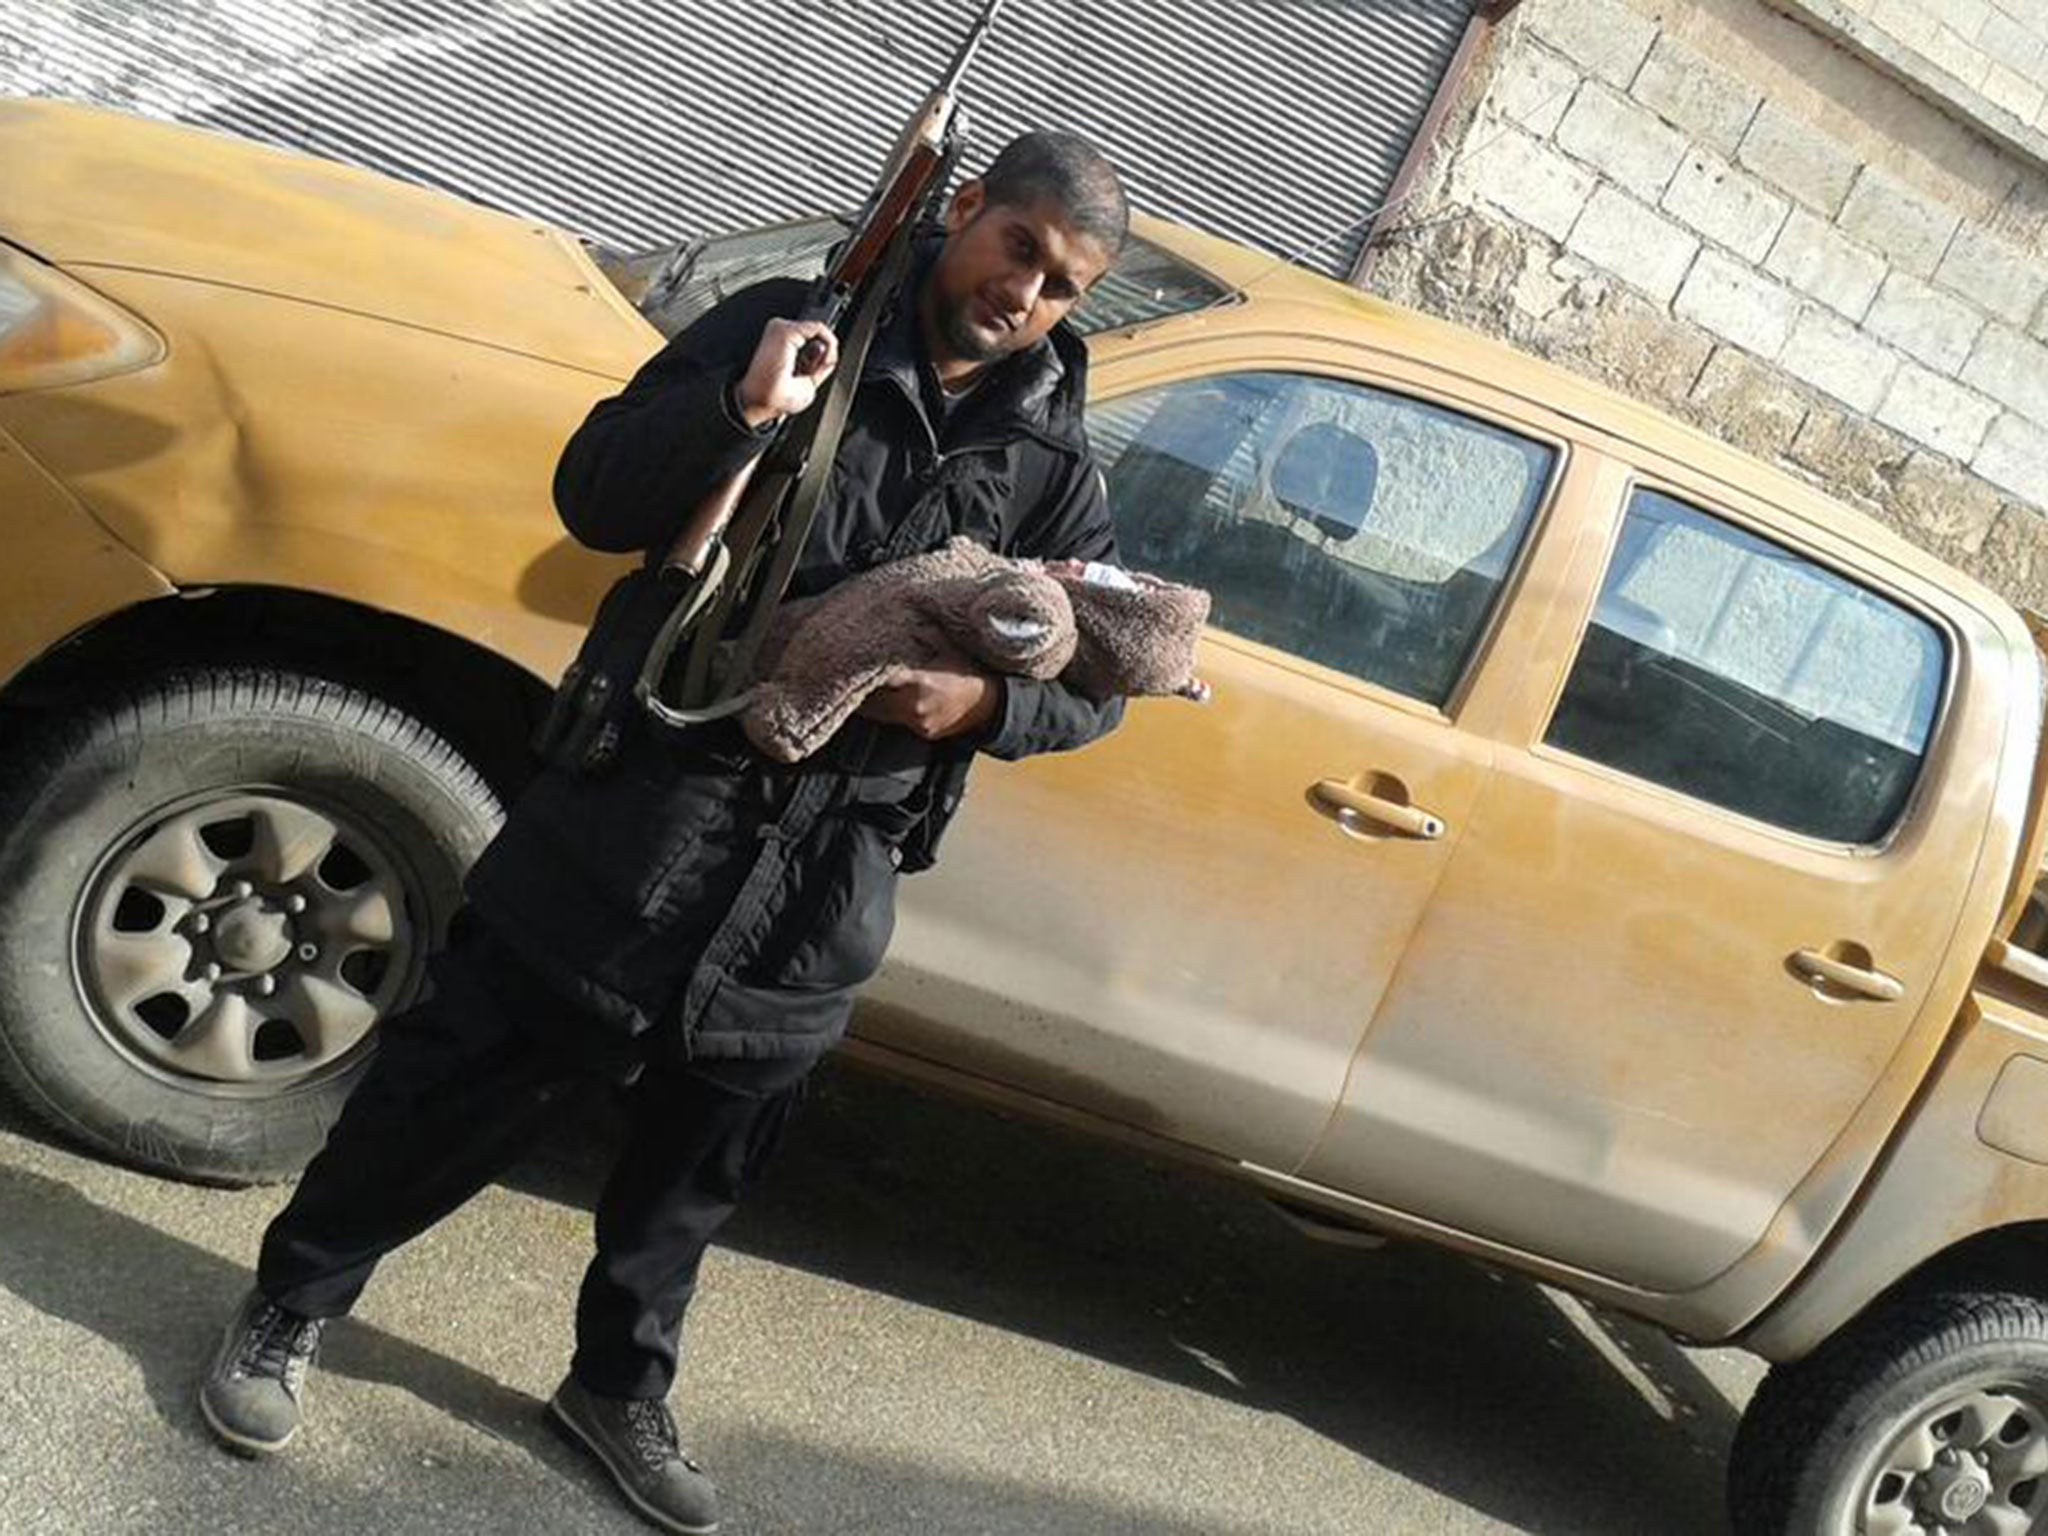 Isis just banned all its fighters from using social media